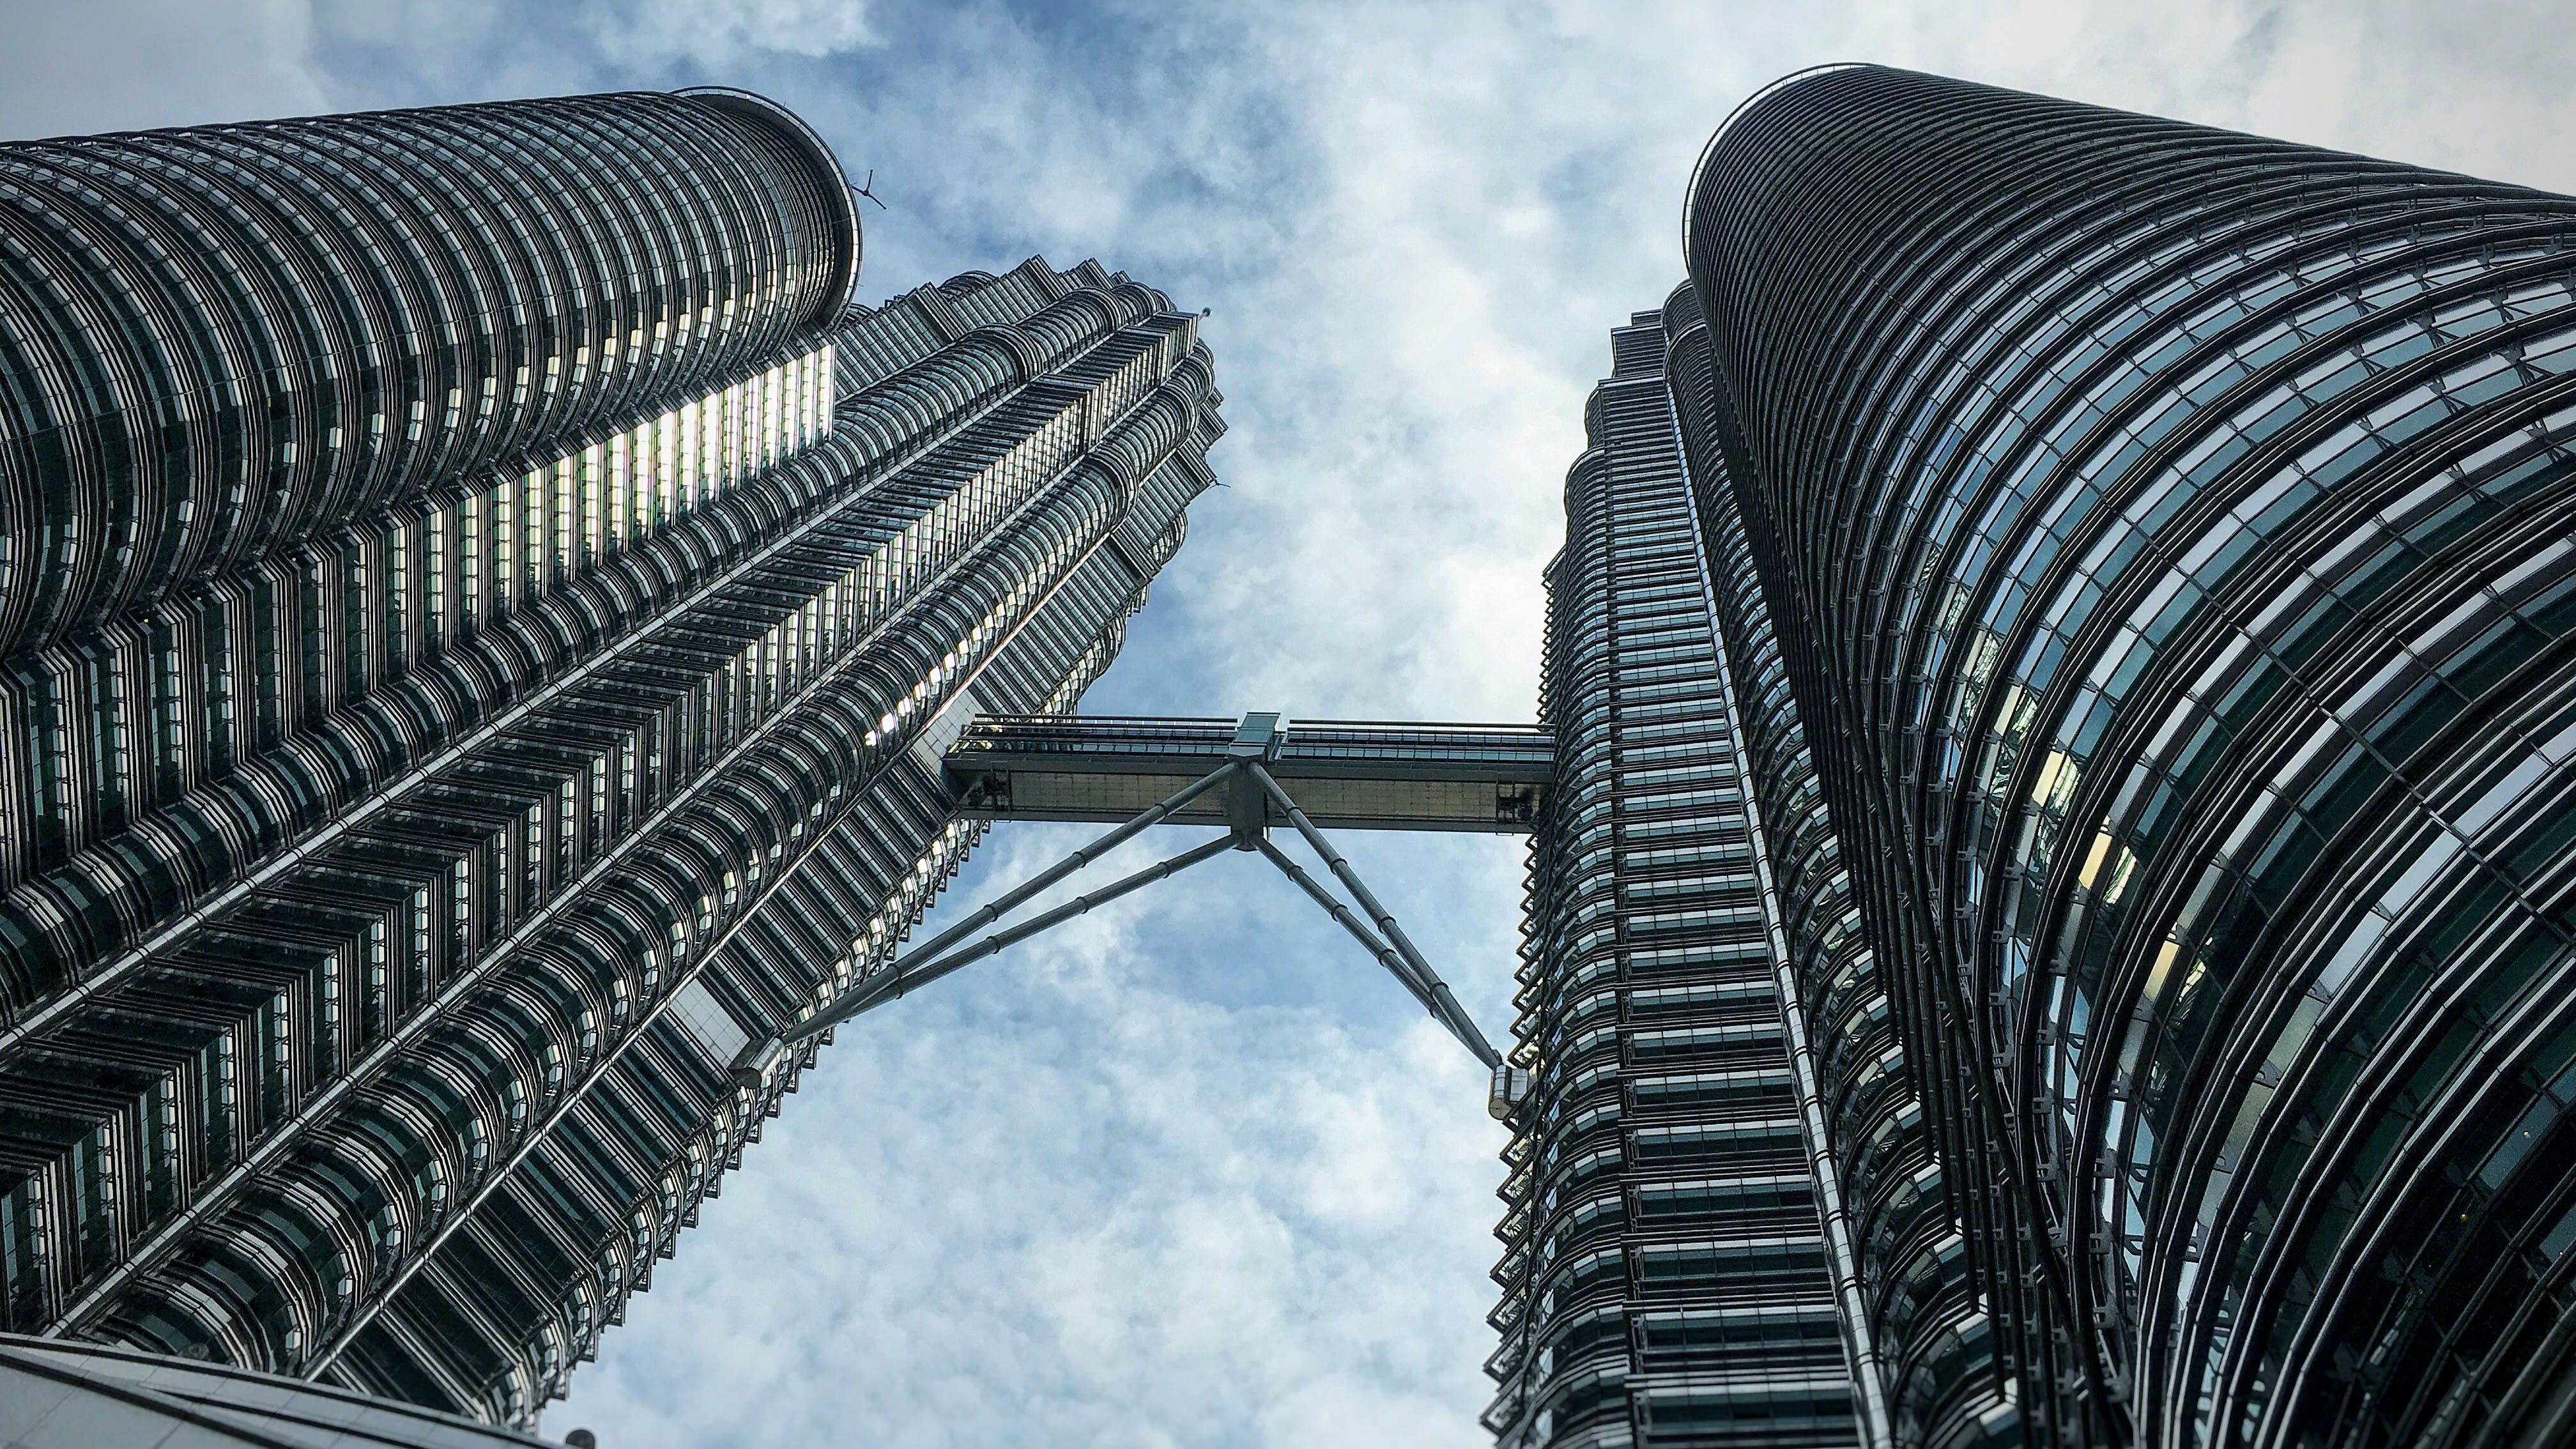 Low-angle Photography of Petronas Towers, Malaysia